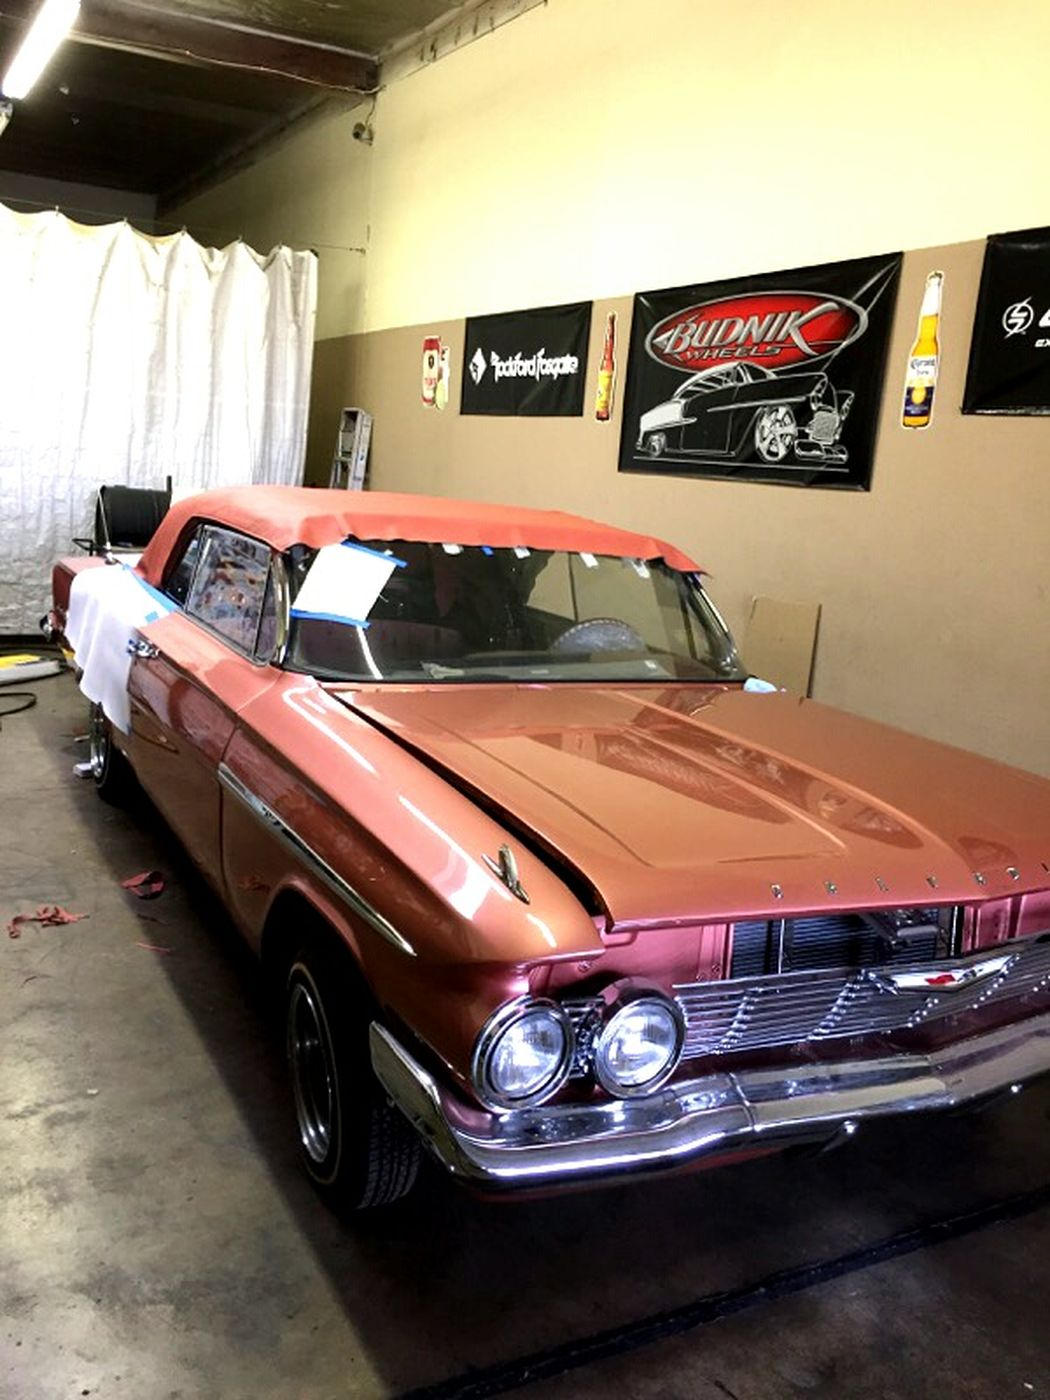 61impala almost complete Mecum Hello World Taking Photos Check This Out Photography